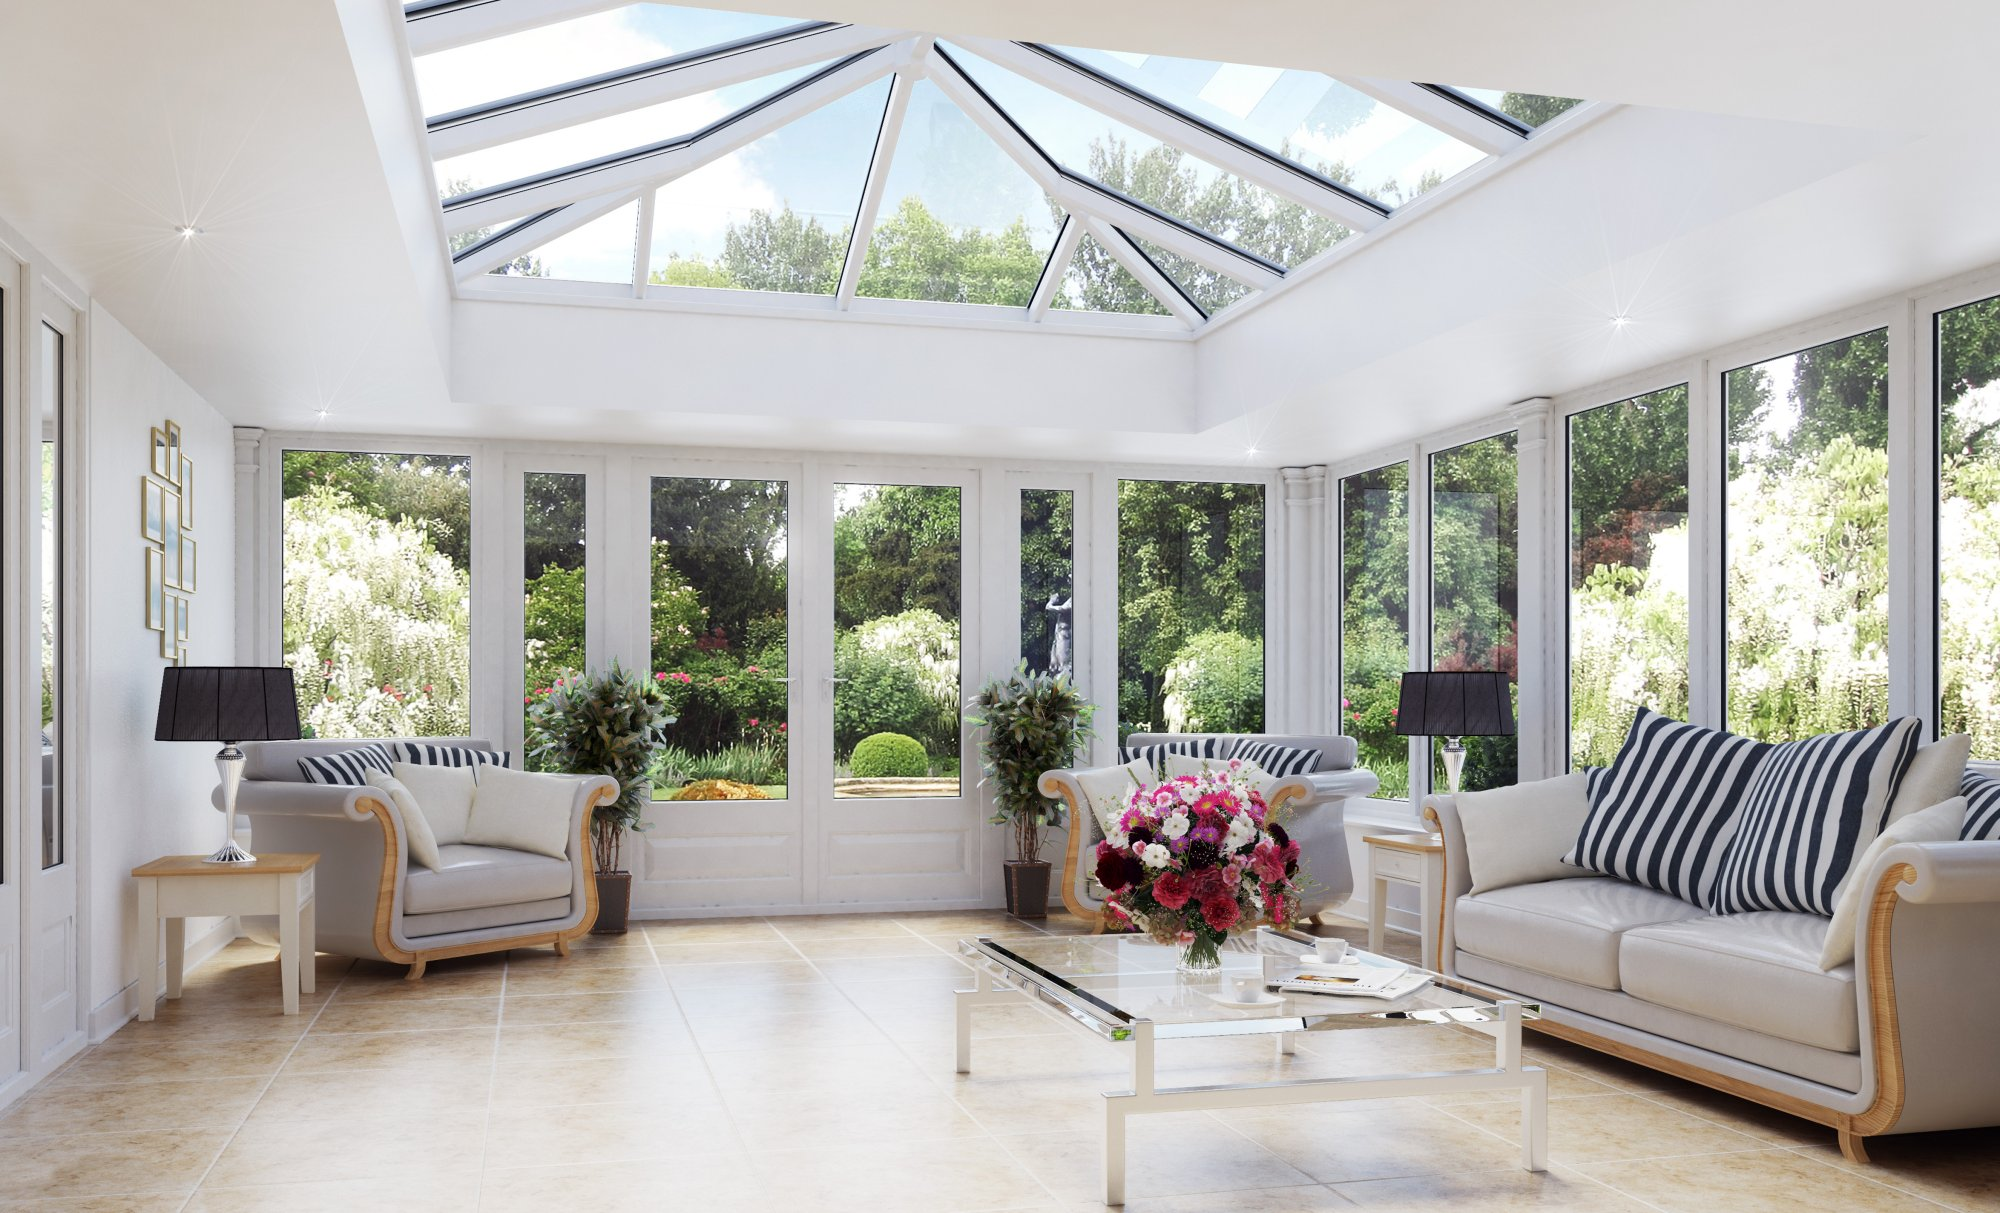 Request your free design consultation bespoke rutland for Free interior design consultation